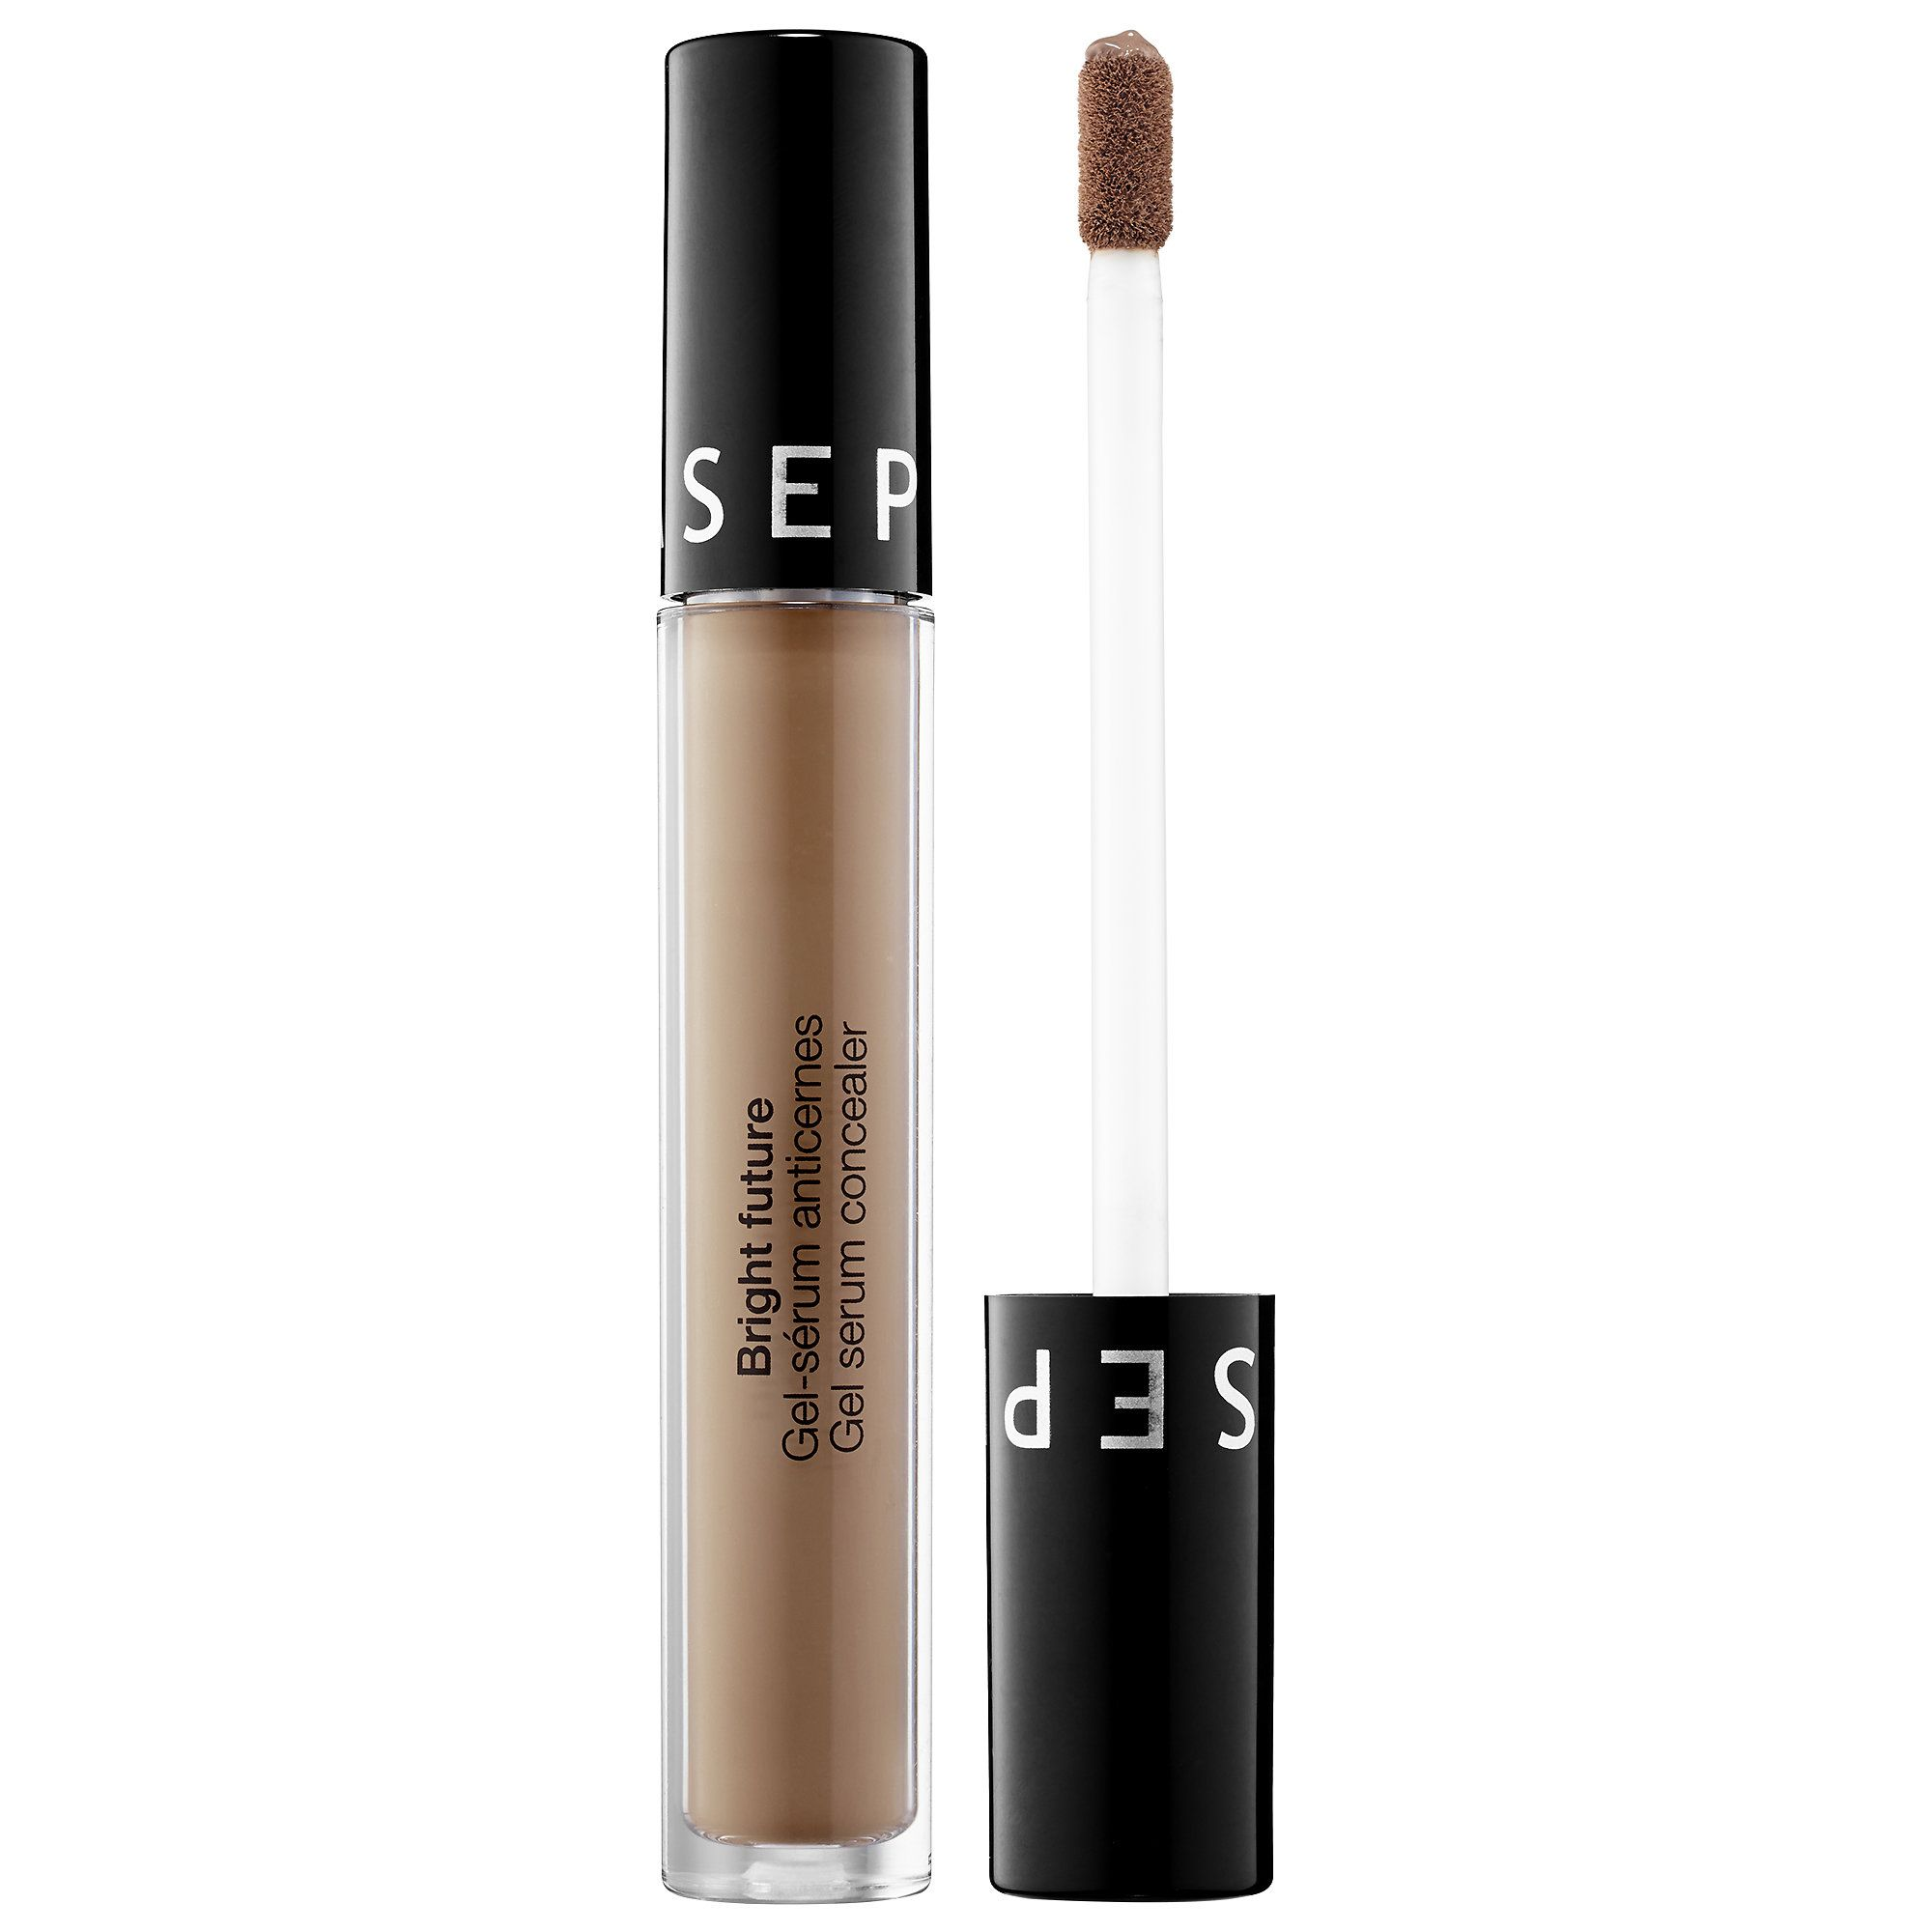 Bright Future Gel Serum Concealer Sephora, Sephora